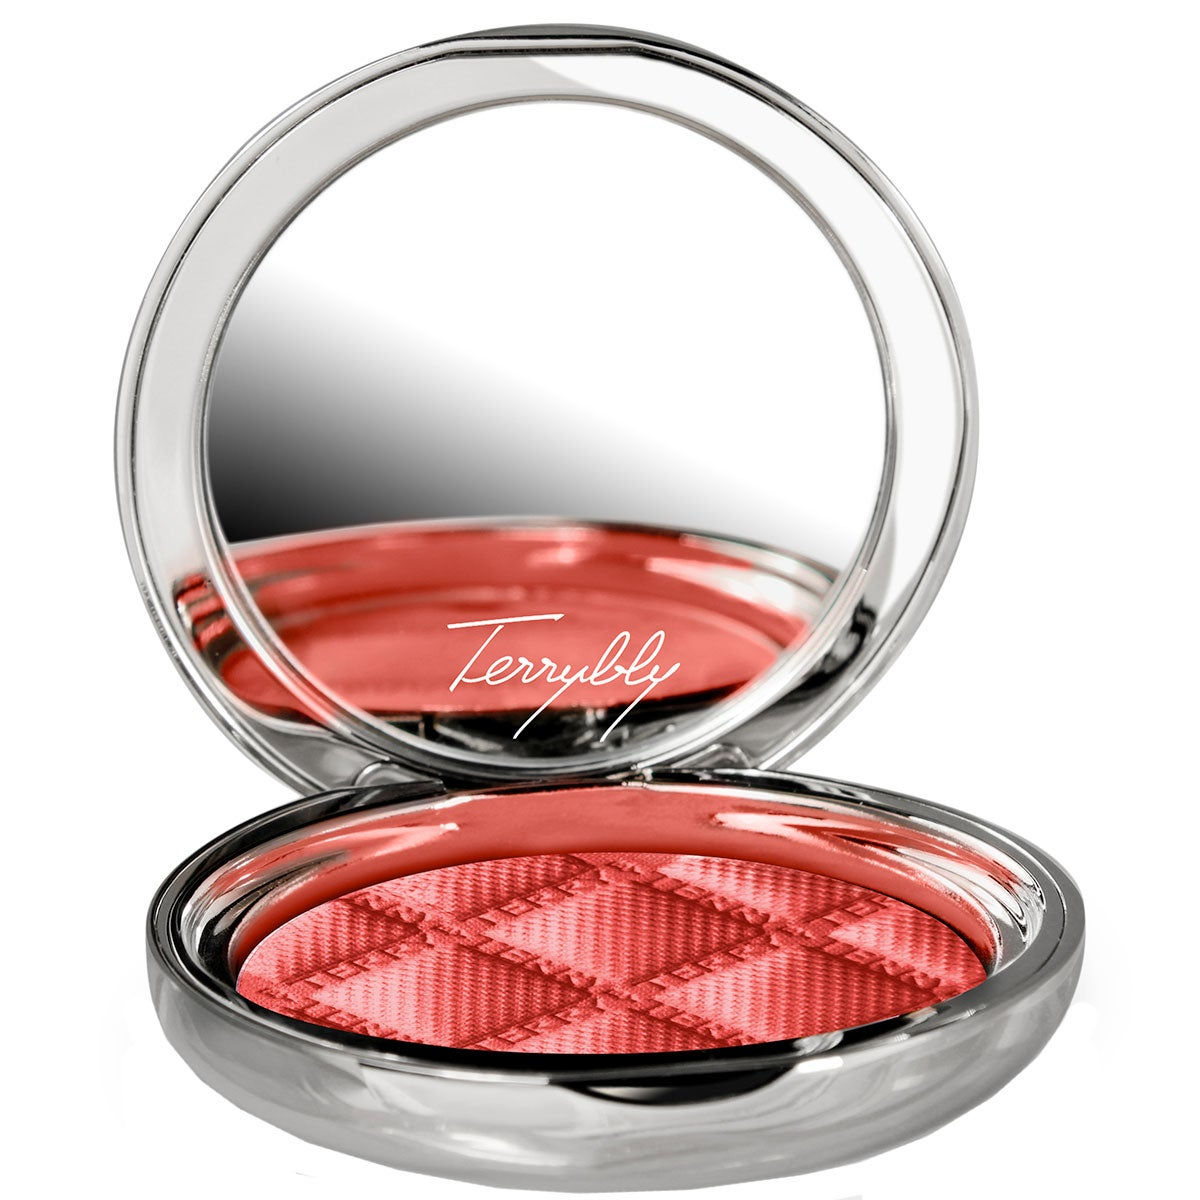 Terrybly Densiliss Blush 6 g By Terry Rouge